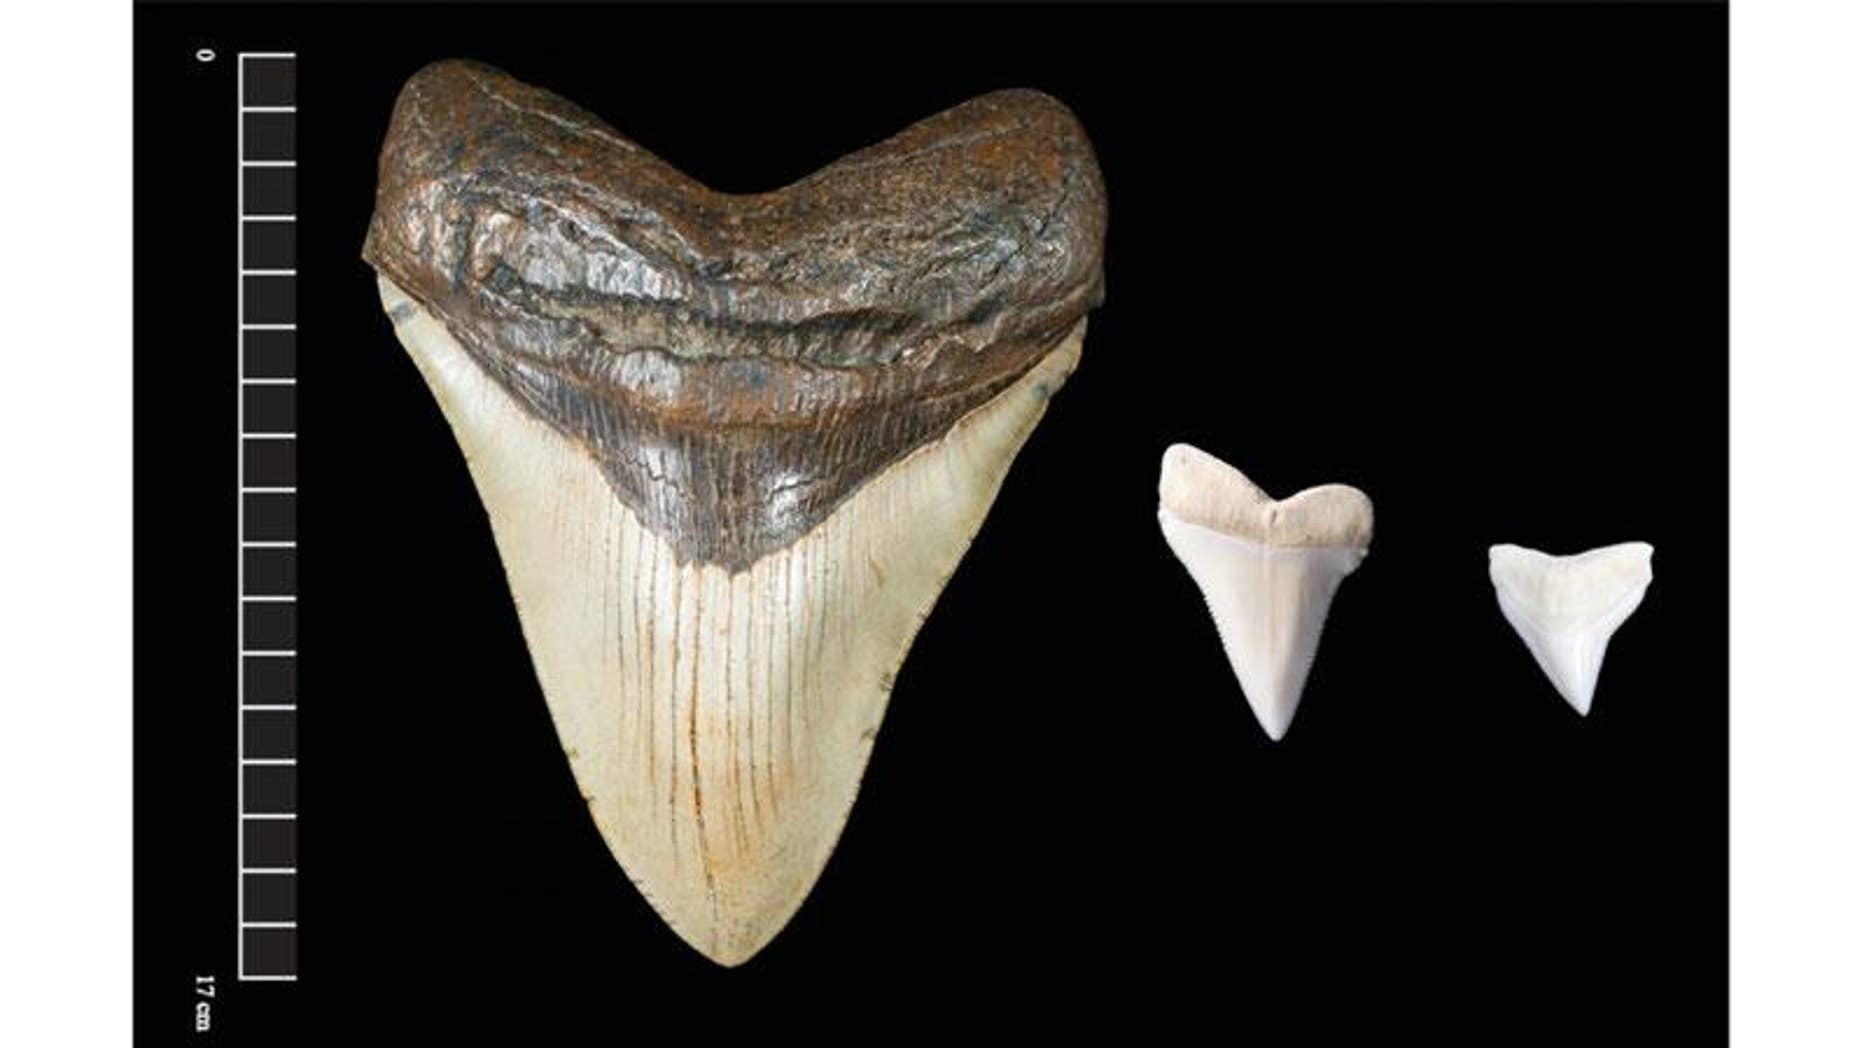 The fossilized giant teeth of extinct megalodon sharks have also been found in sacred caches buried at several ancient Maya sites.